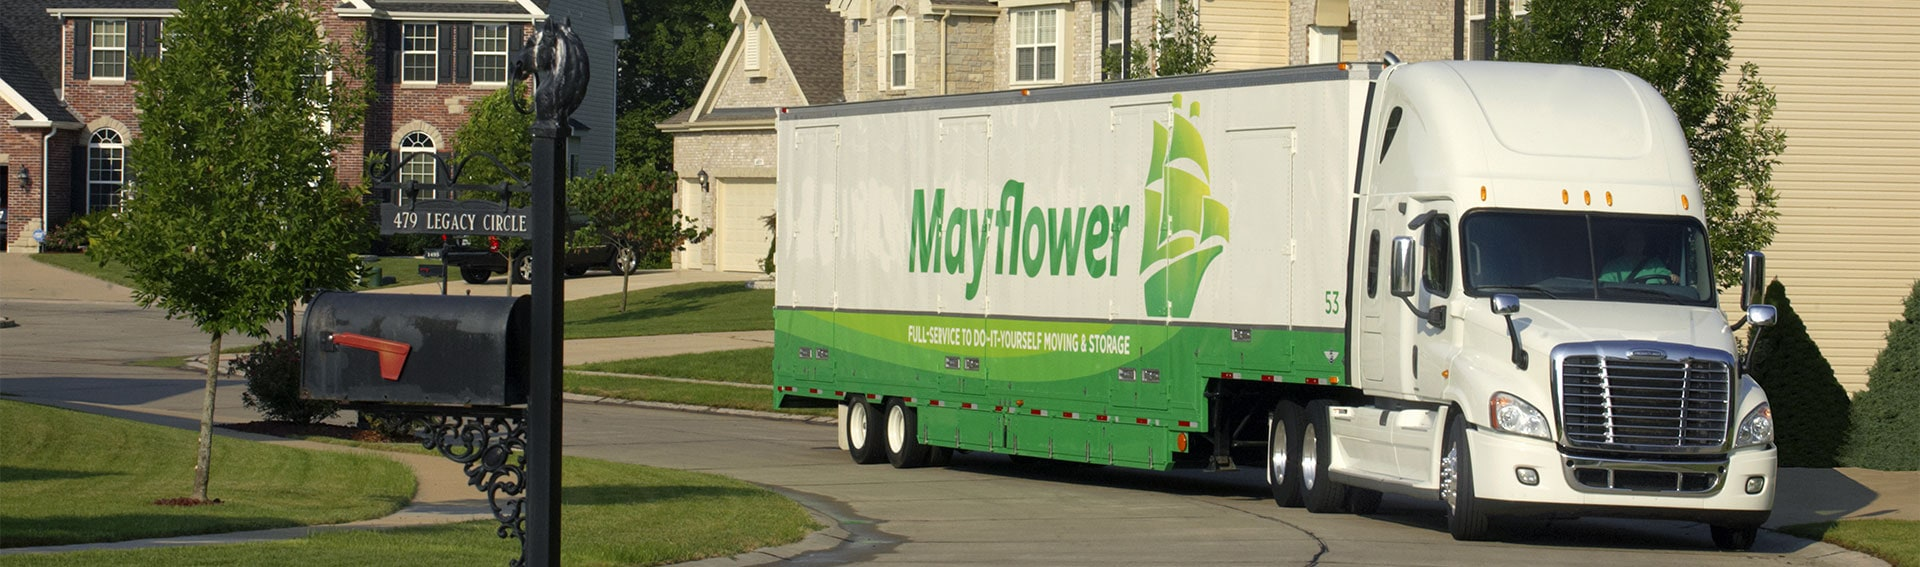 chicago mayflower movers